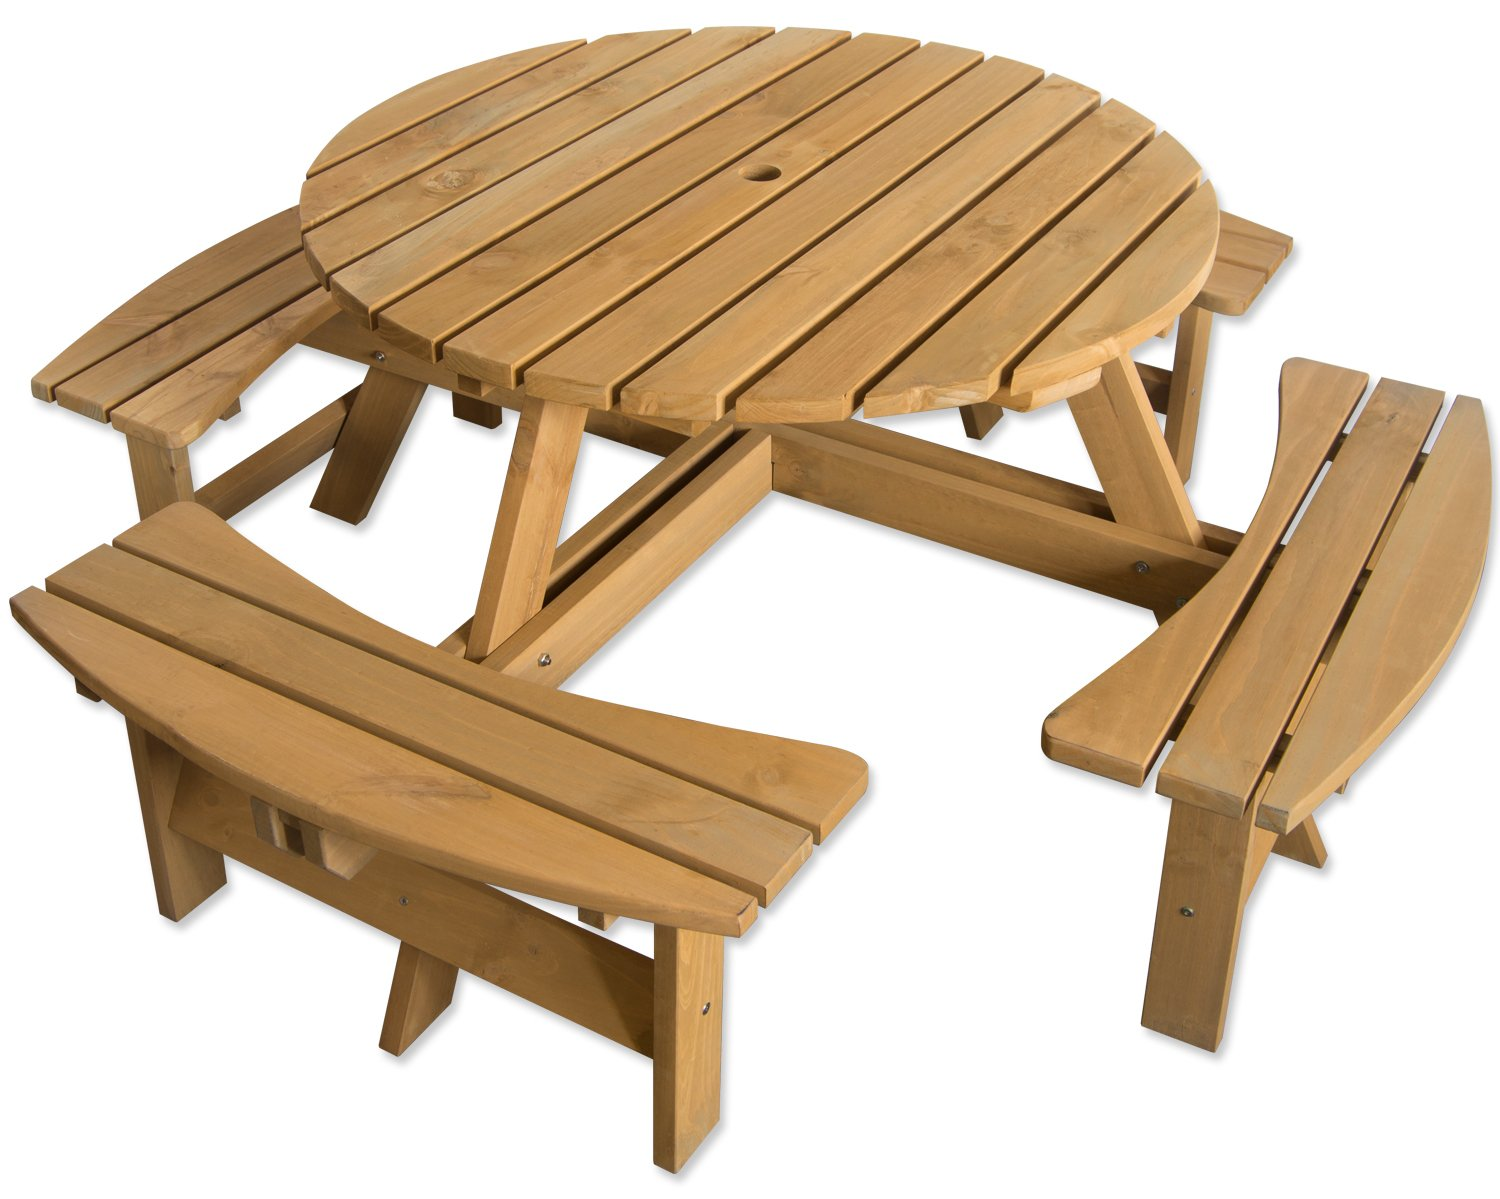 Maribelle 8 Seater Stained Pine Round Wooden Bench/Picnic Table ...